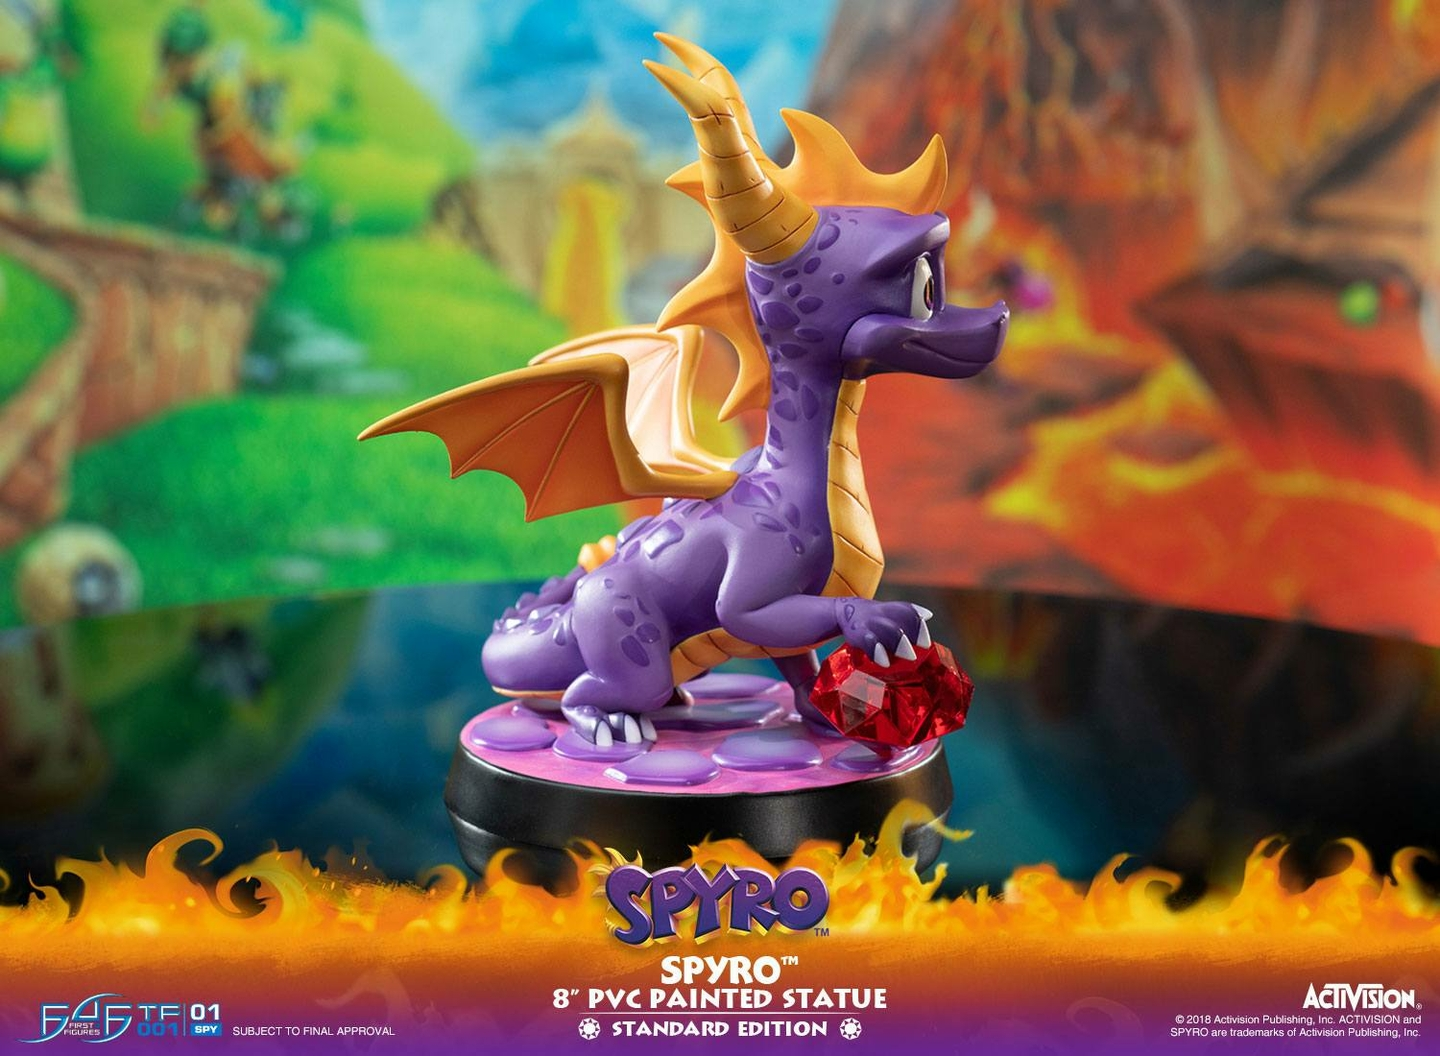 Statuette Spyro the Dragon Spyro 20cm 1001 Figurines (16)